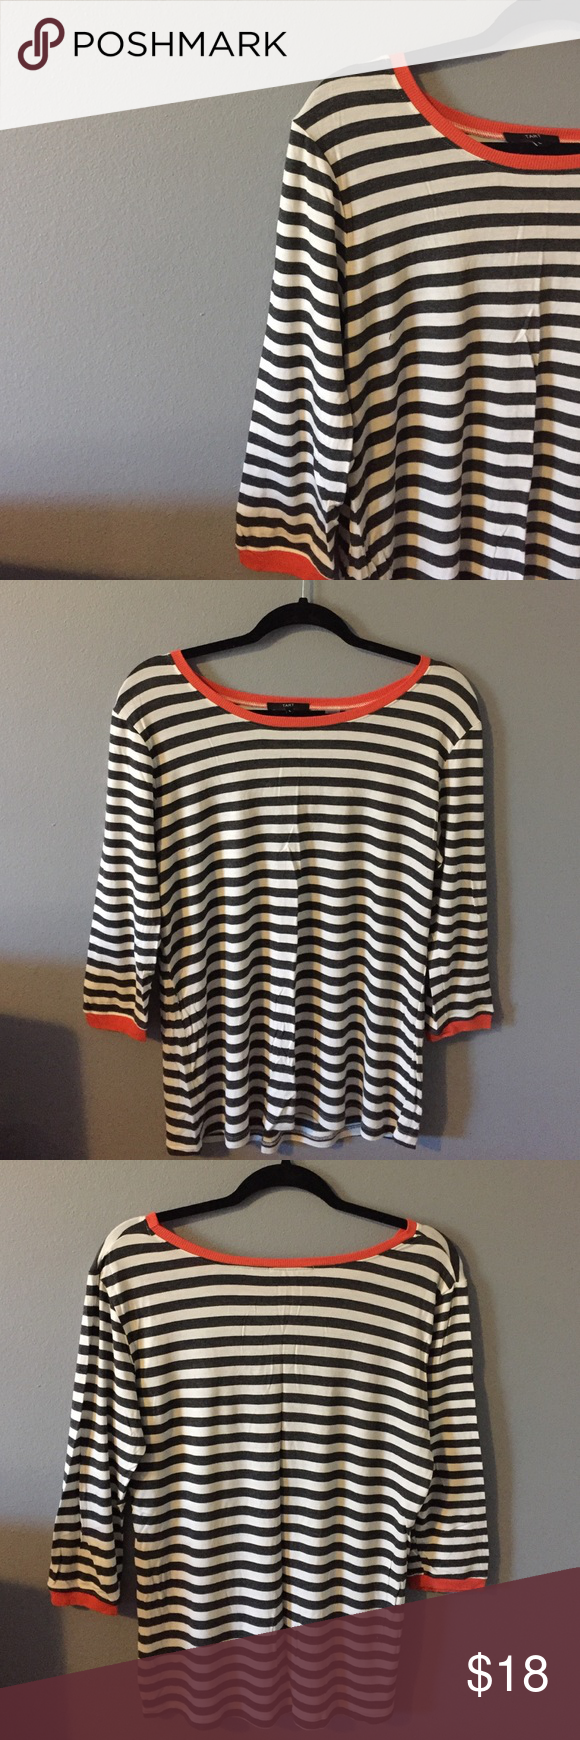 Striped Top from Stitch Fix Really cute Top from Stitch Fix. The brand is Tart.  White and charcoal stripes with orange around the collar and wrists.  95% Rayon, 5% Spandex.  3/4 sleeve.  Excellent condition. Tart Tops Tees - Long Sleeve